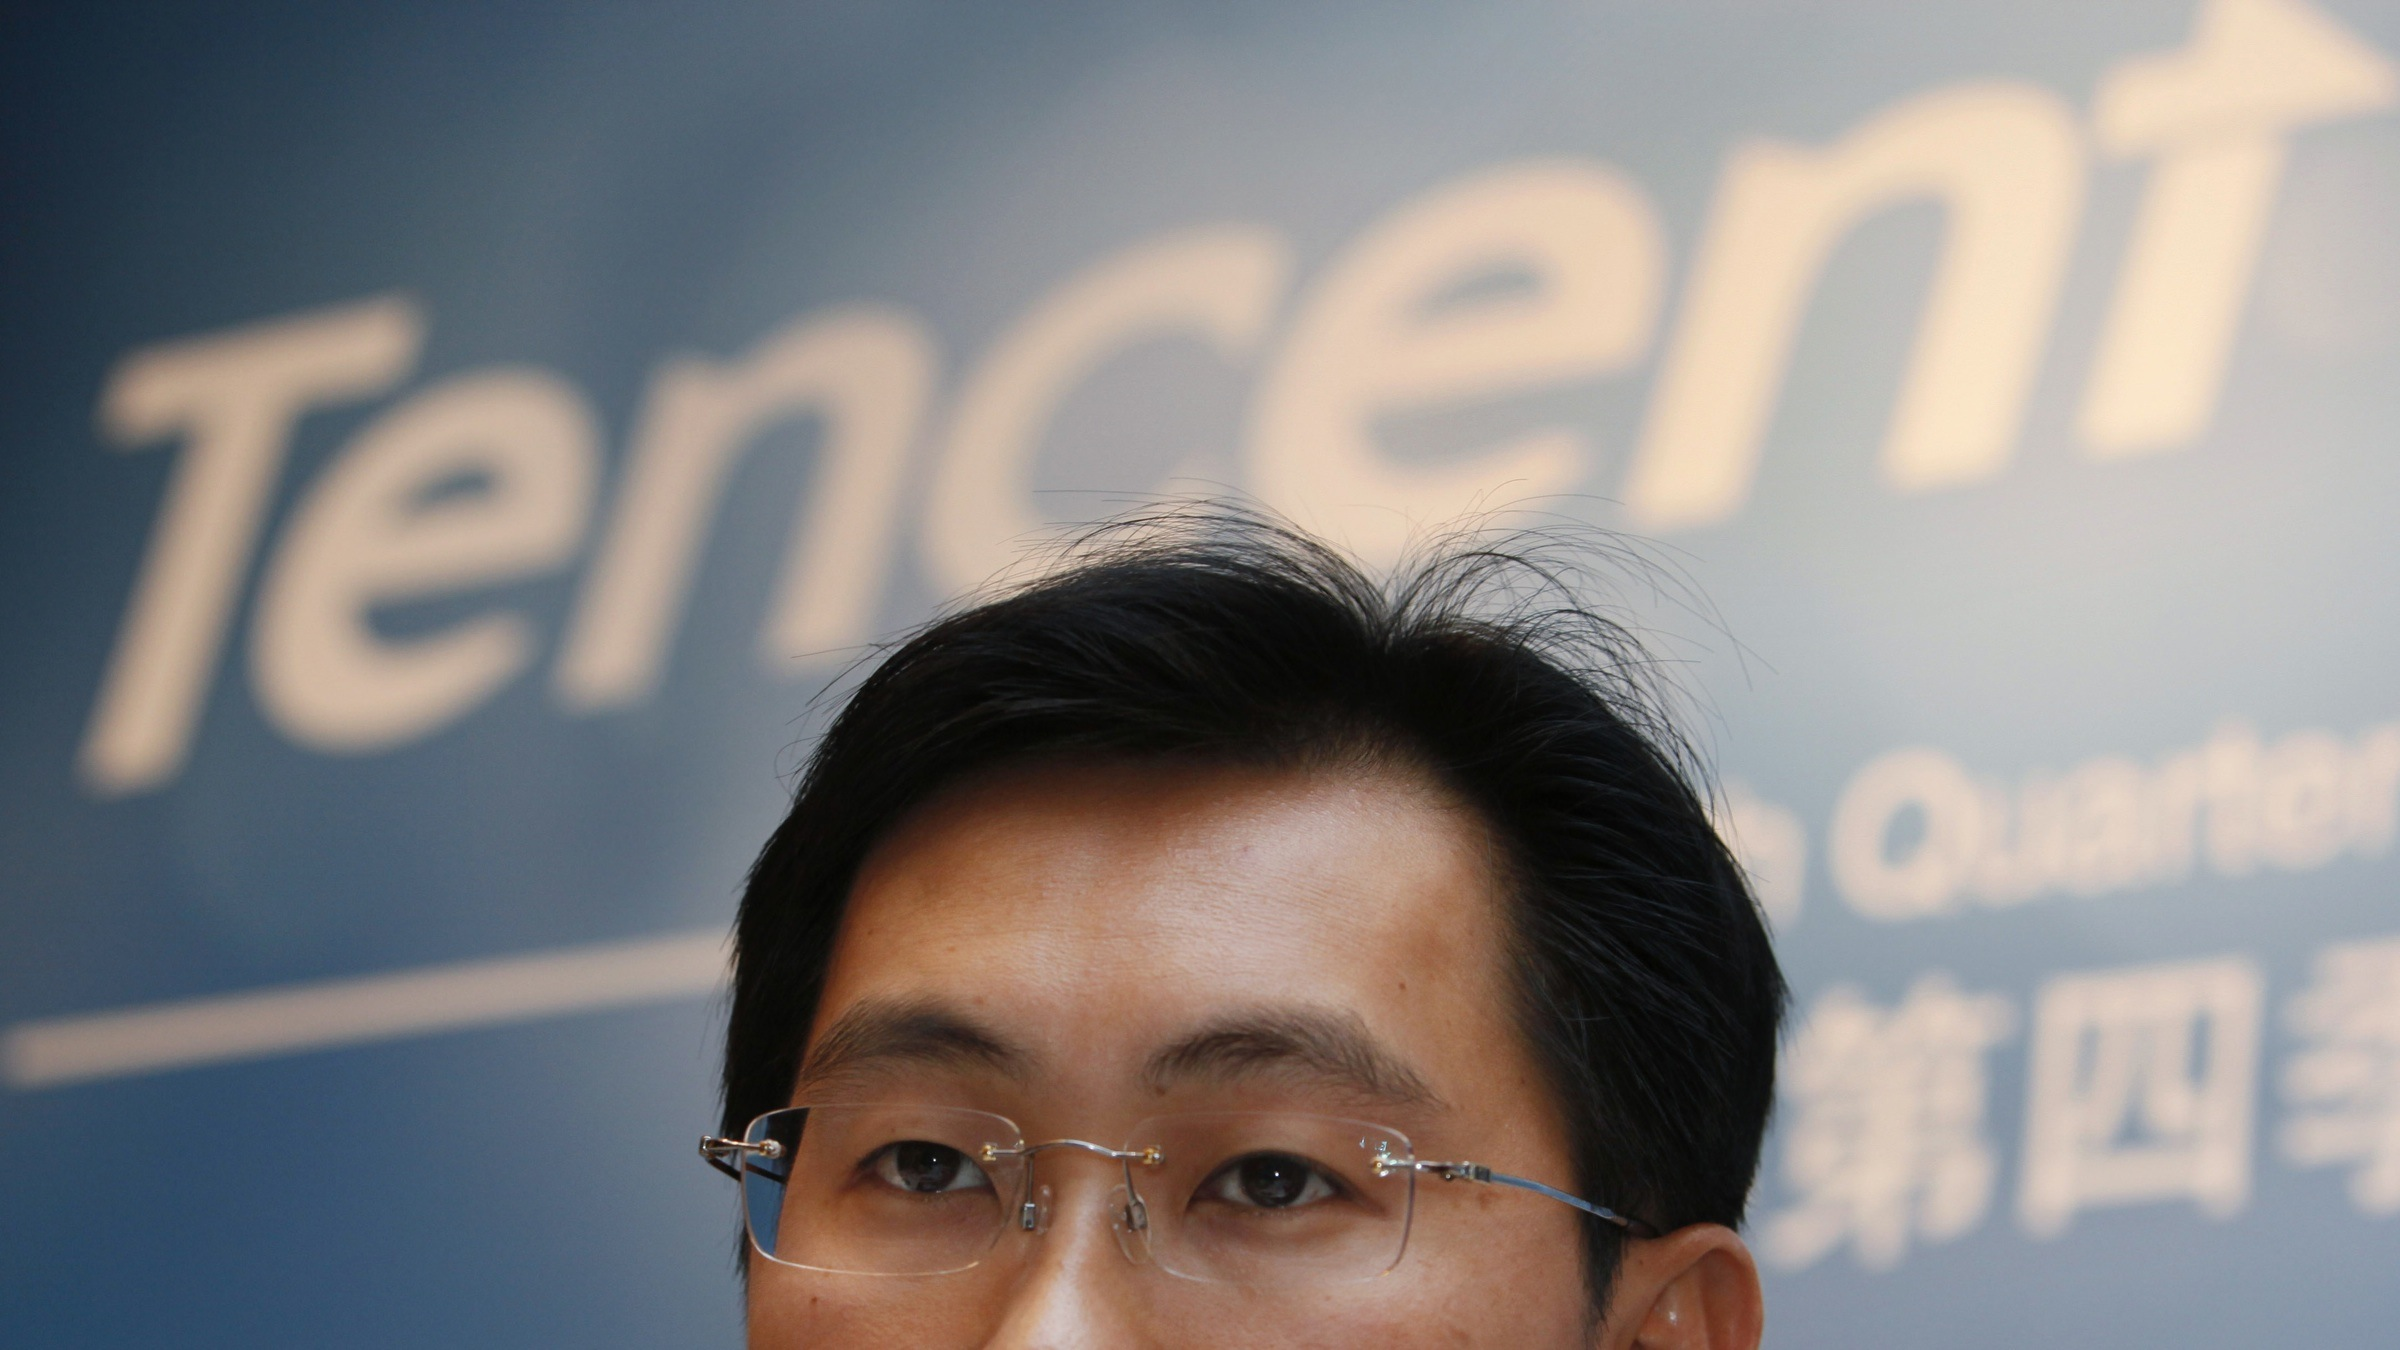 Pony Ma, Chairman and CEO of Tencent Holdings Limited speaks during the news conference for the 2009 fourth quarter and annual company result announcement in Hong Kong Wednesday, March. 17, 2010. Tencent Holdings Limited, a leading provider of Internet and mobile & telecommunications value-added services in China, announces their profit for the year was RMB5,221.6 million (US$764.7 million), an increase of 85.4% year of year.  (AP Photo/Kin Cheung)